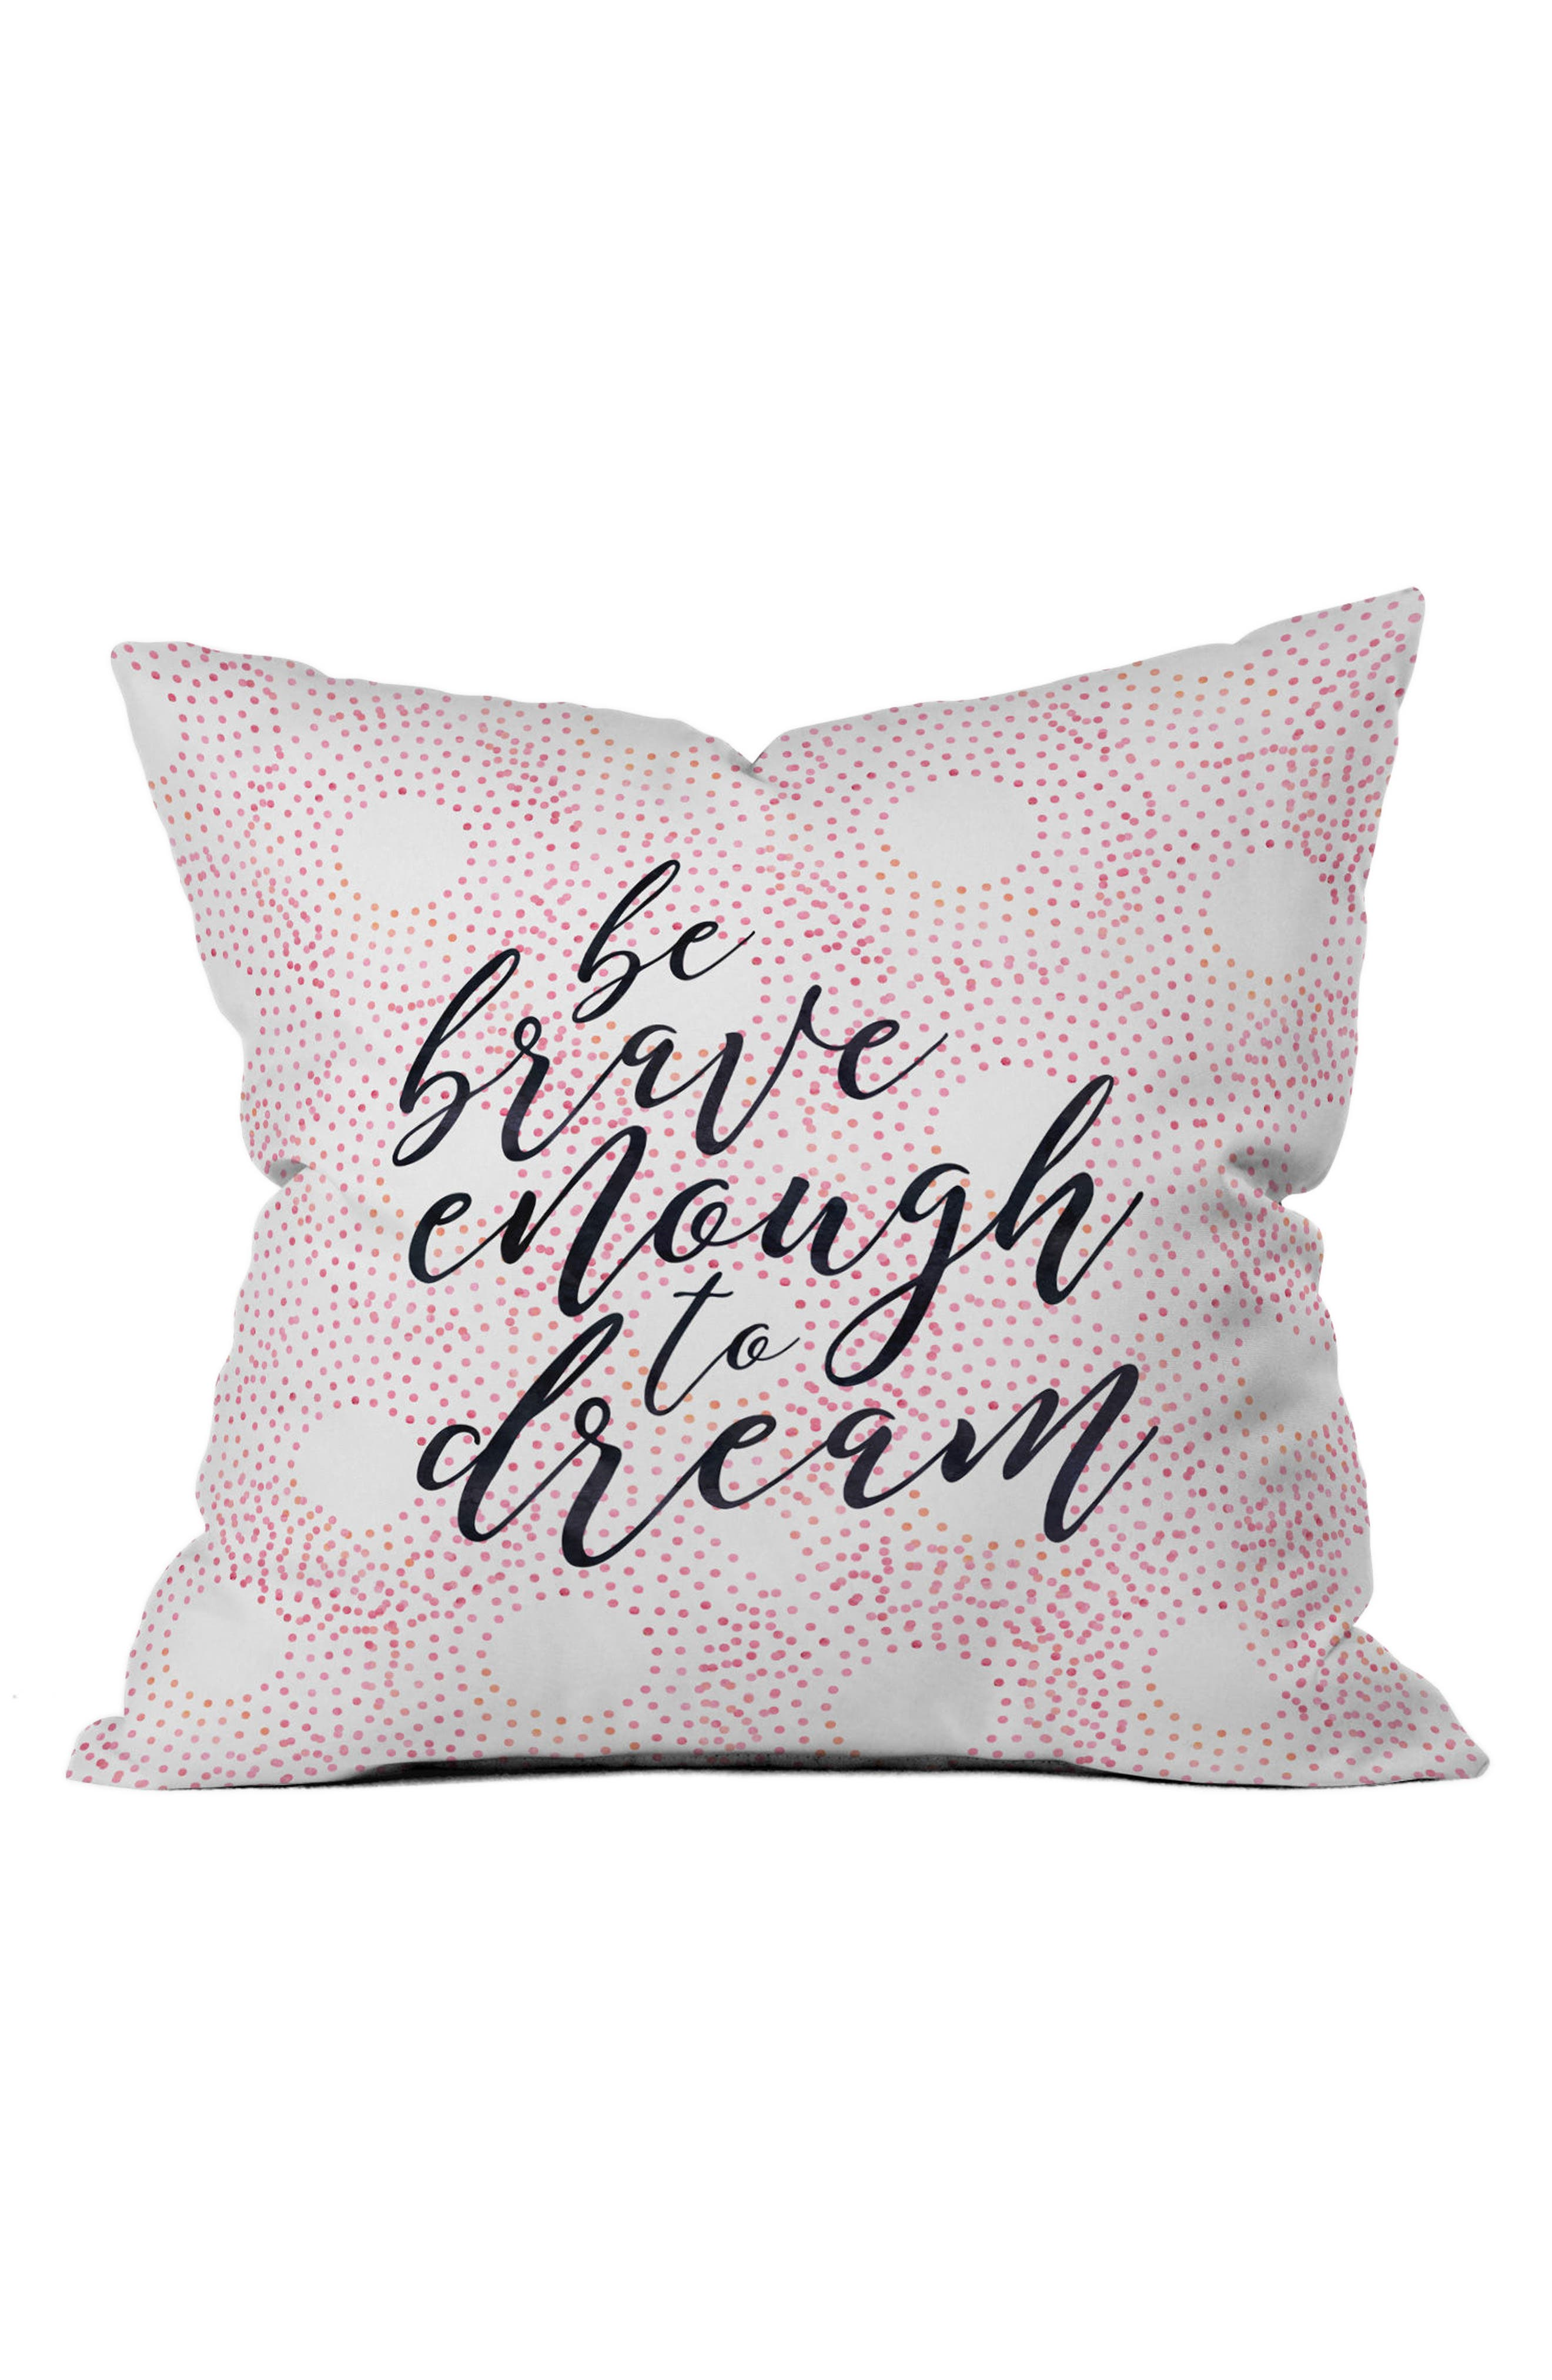 Alternate Image 1 Selected - DENY Designs Be Brave Pillow